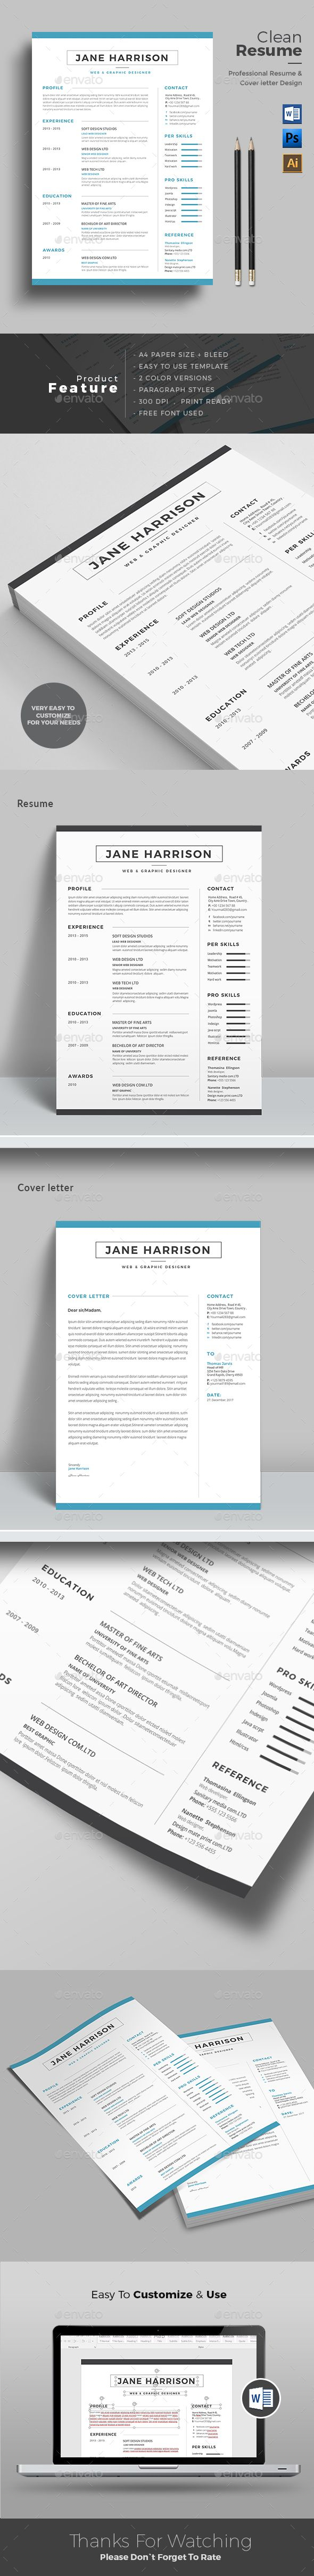 Resume - Resumes Stationery Download here: https://graphicriver.net/item/resume/19837908?ref=classicdesignp